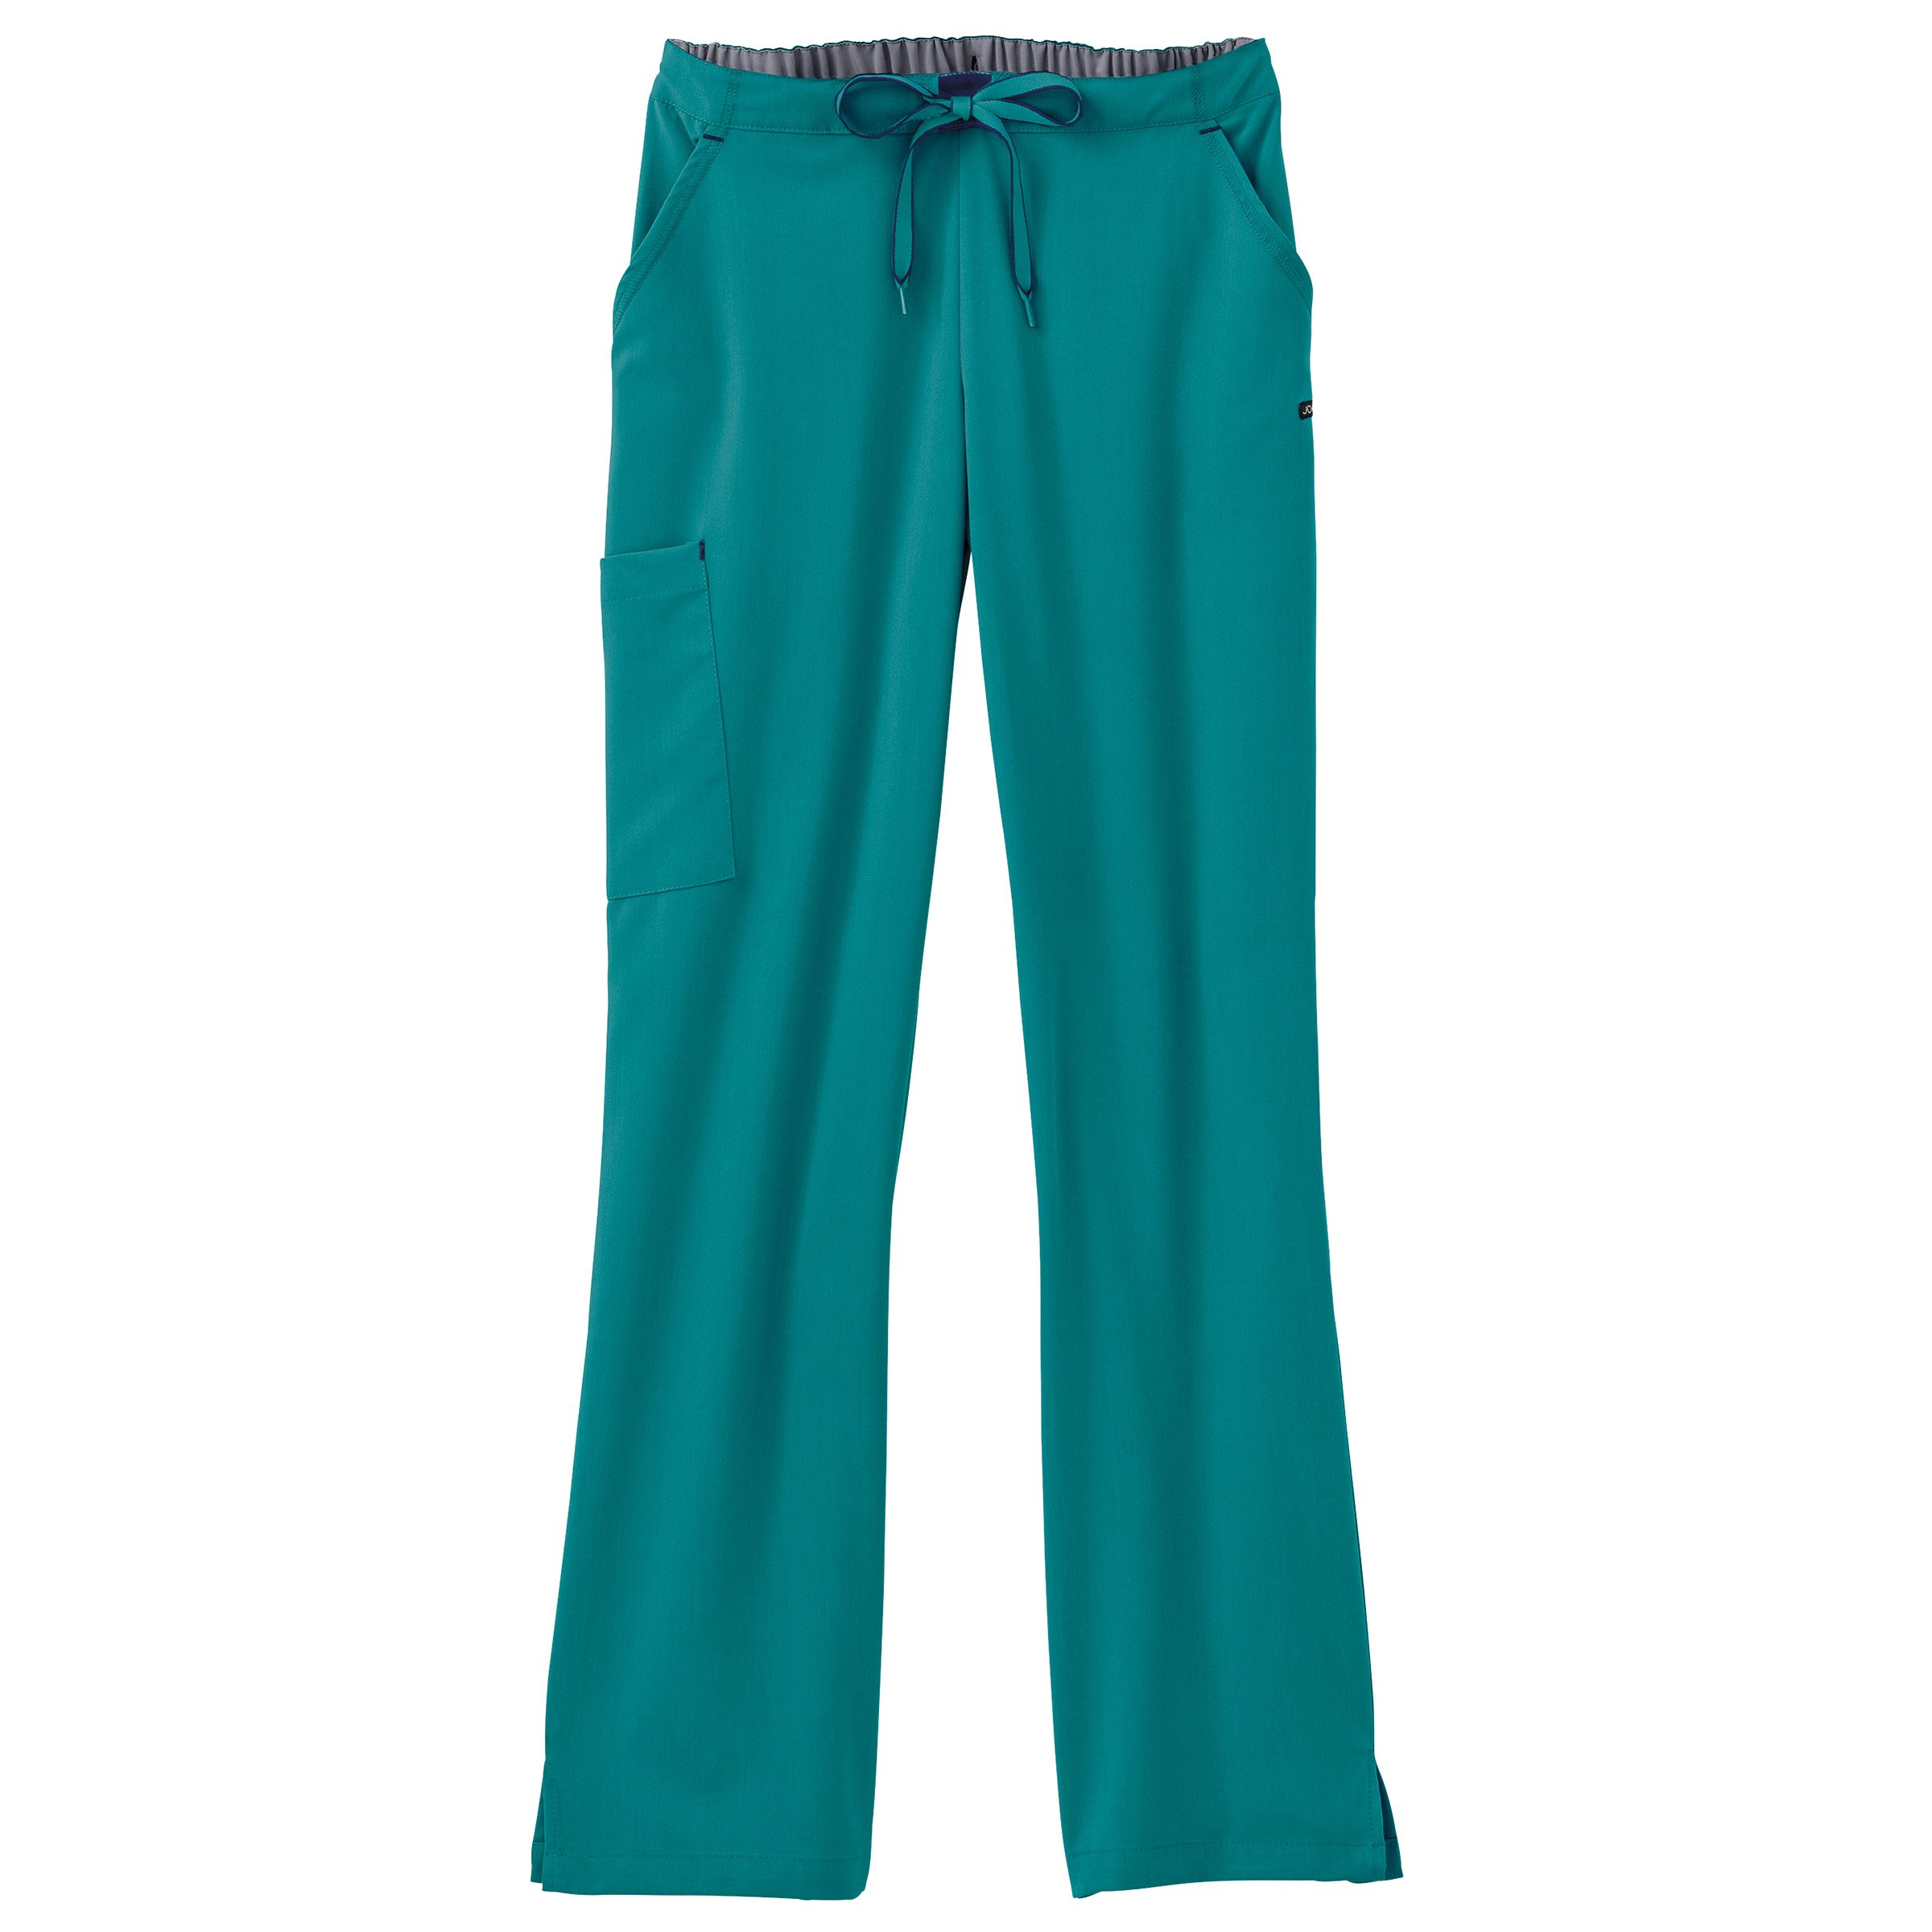 Modern Fit Collection by Jockey Women's Convertible Drawstring Scrub Pant Small Teal